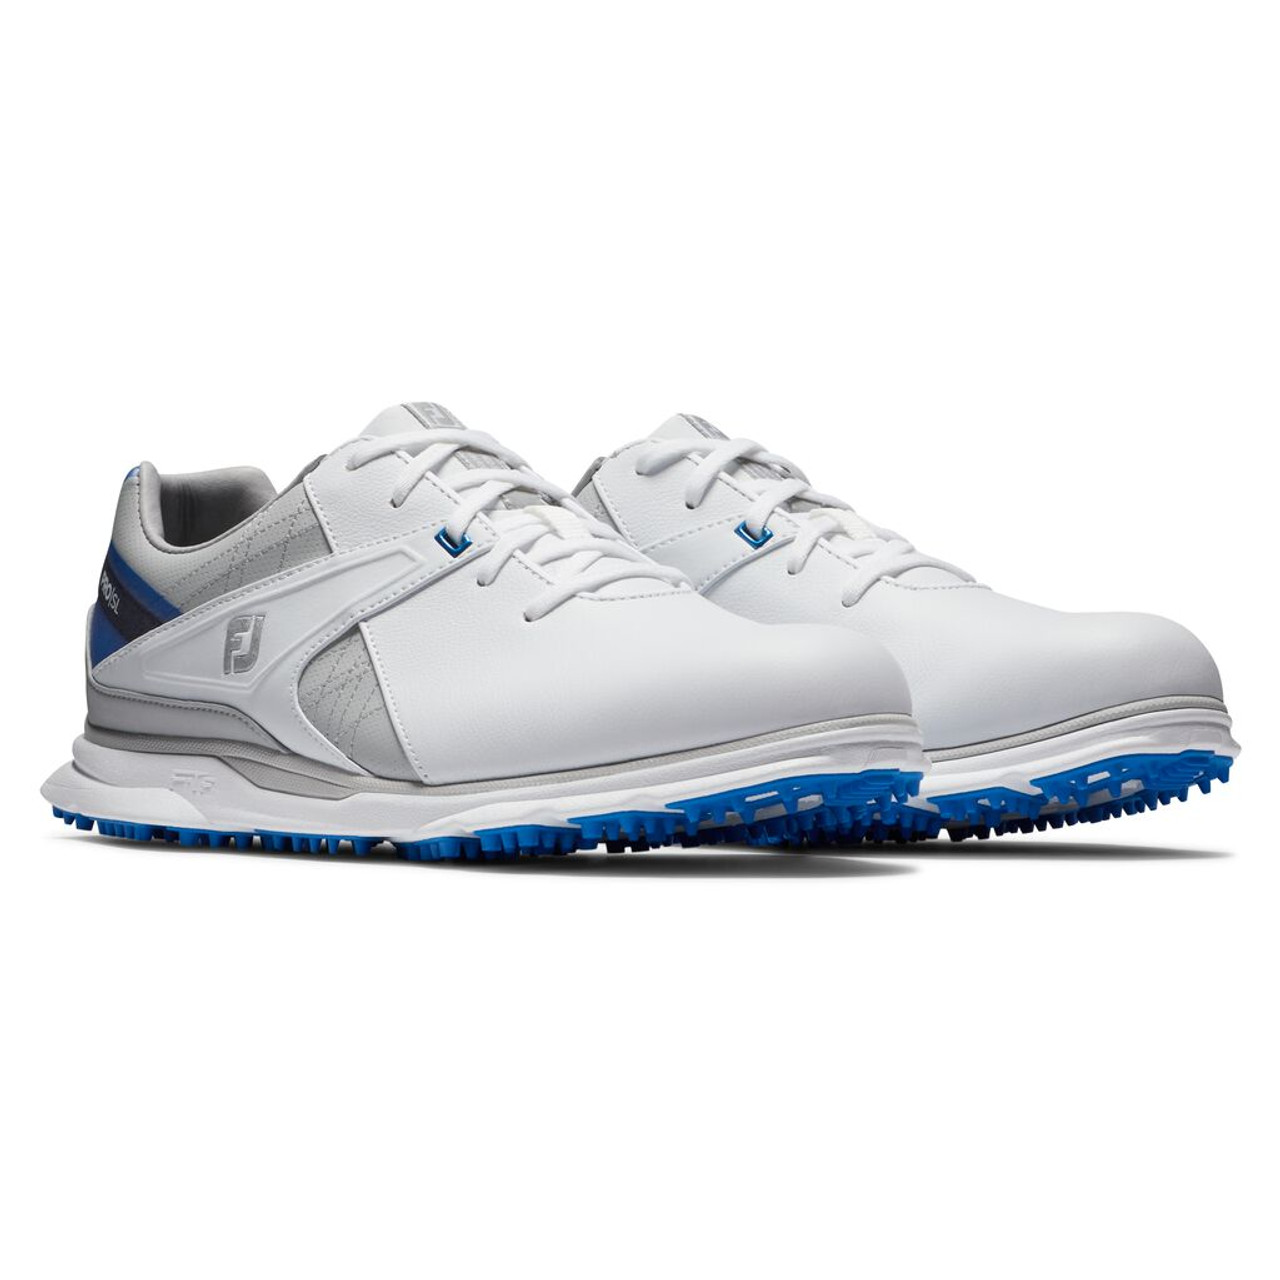 FootJoy Pro SL Golf Shoes - White / Blue / Grey (53811)